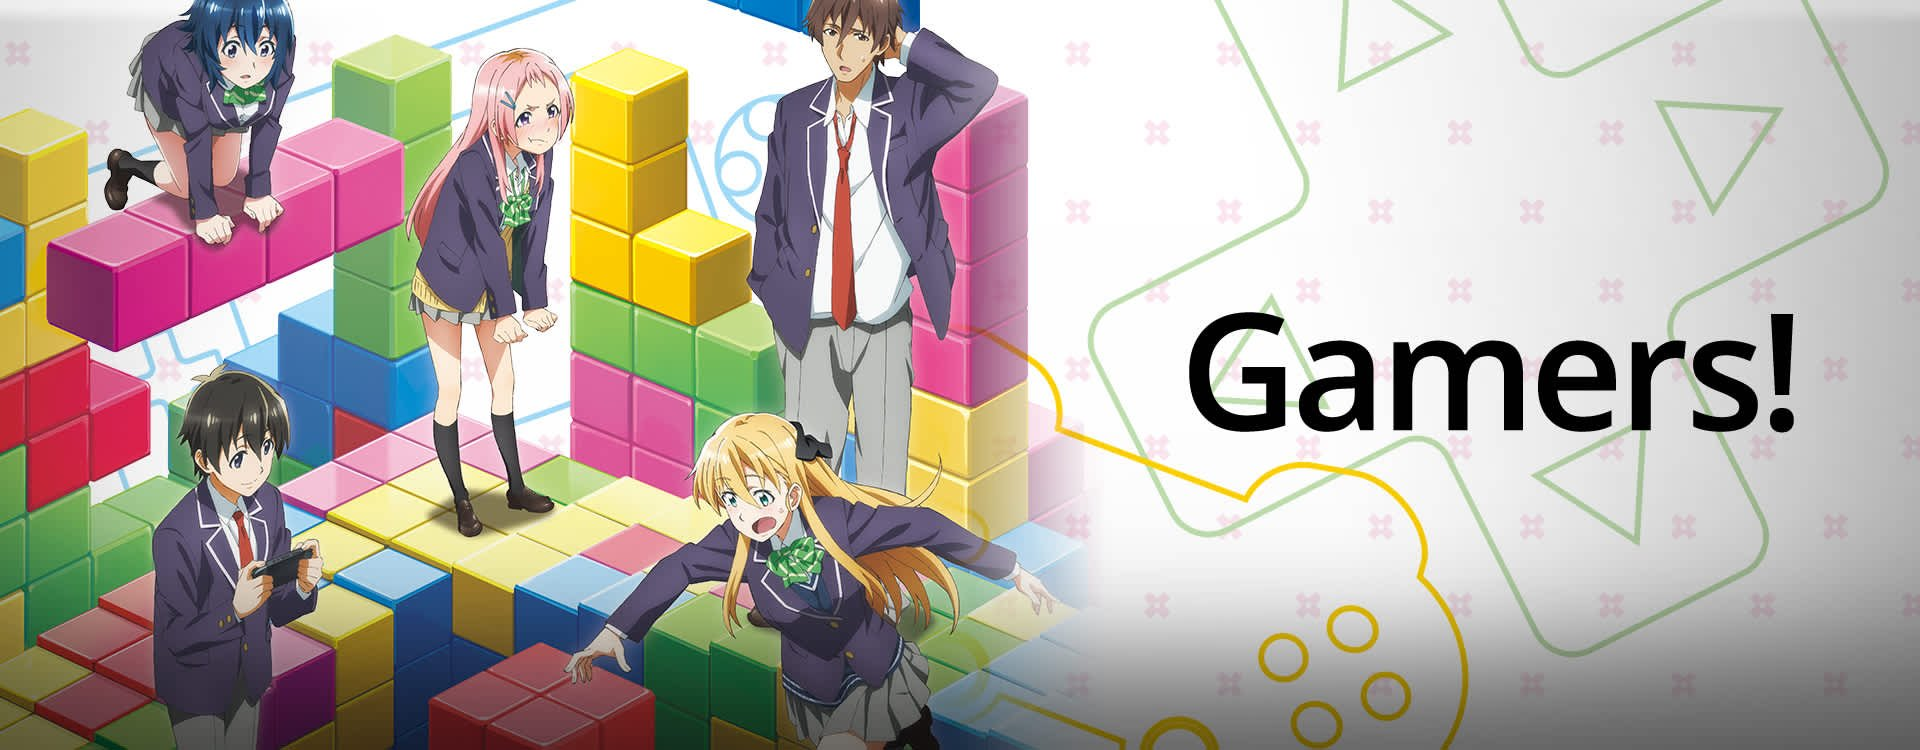 Anime Review #70: Gamers! - Anime Institute